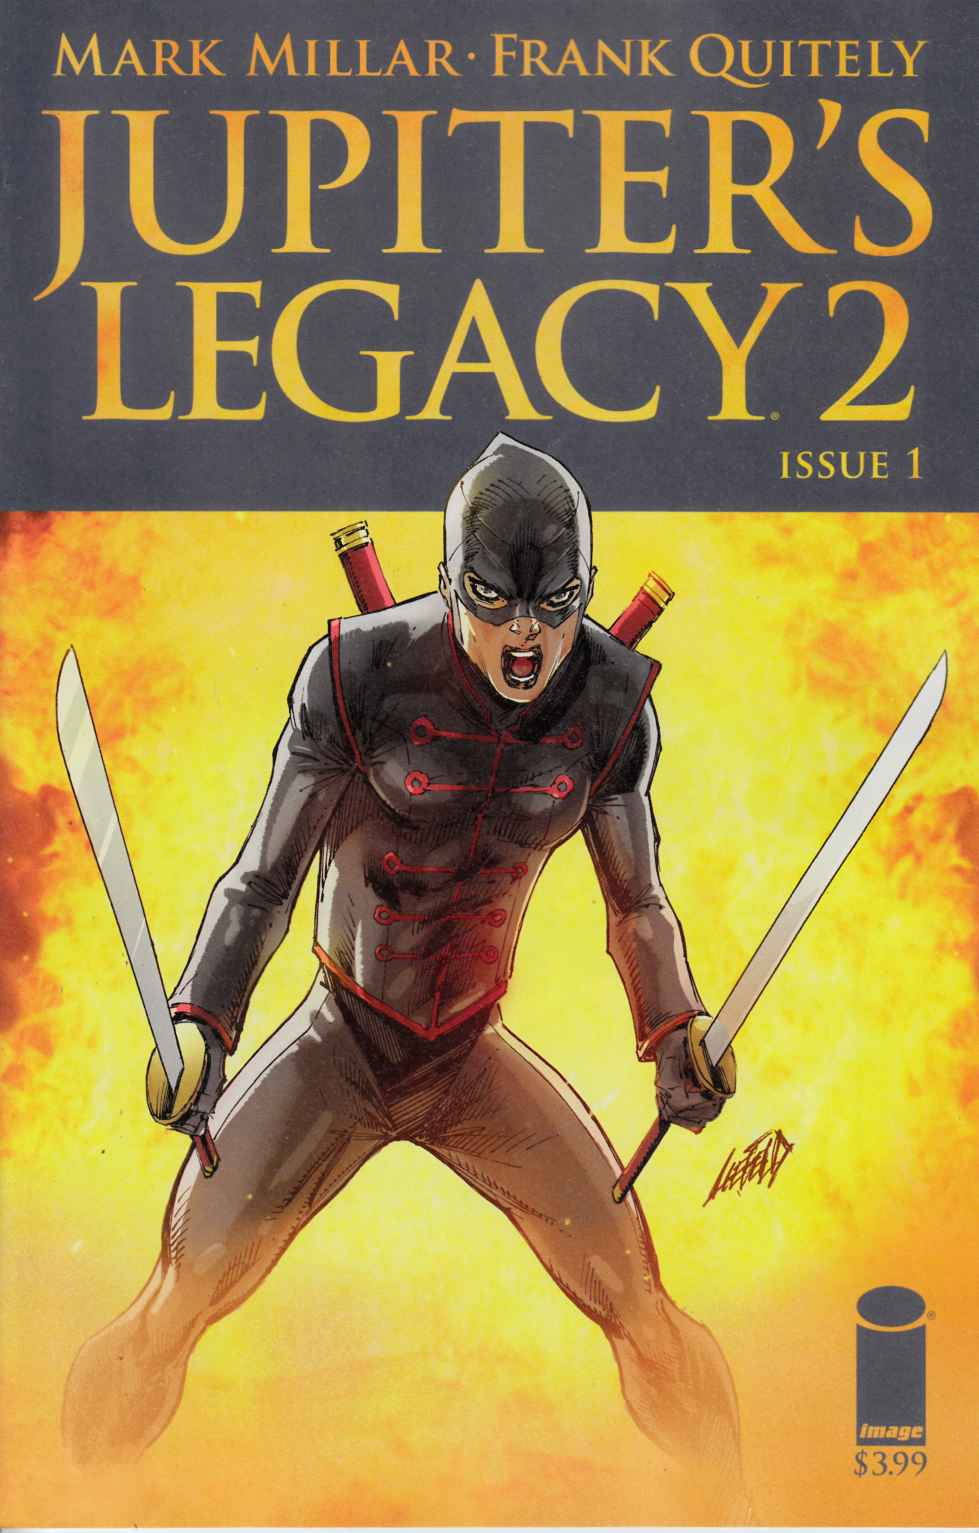 Jupiters Legacy Vol 2 #1 Cover G [Image Comic] THUMBNAIL